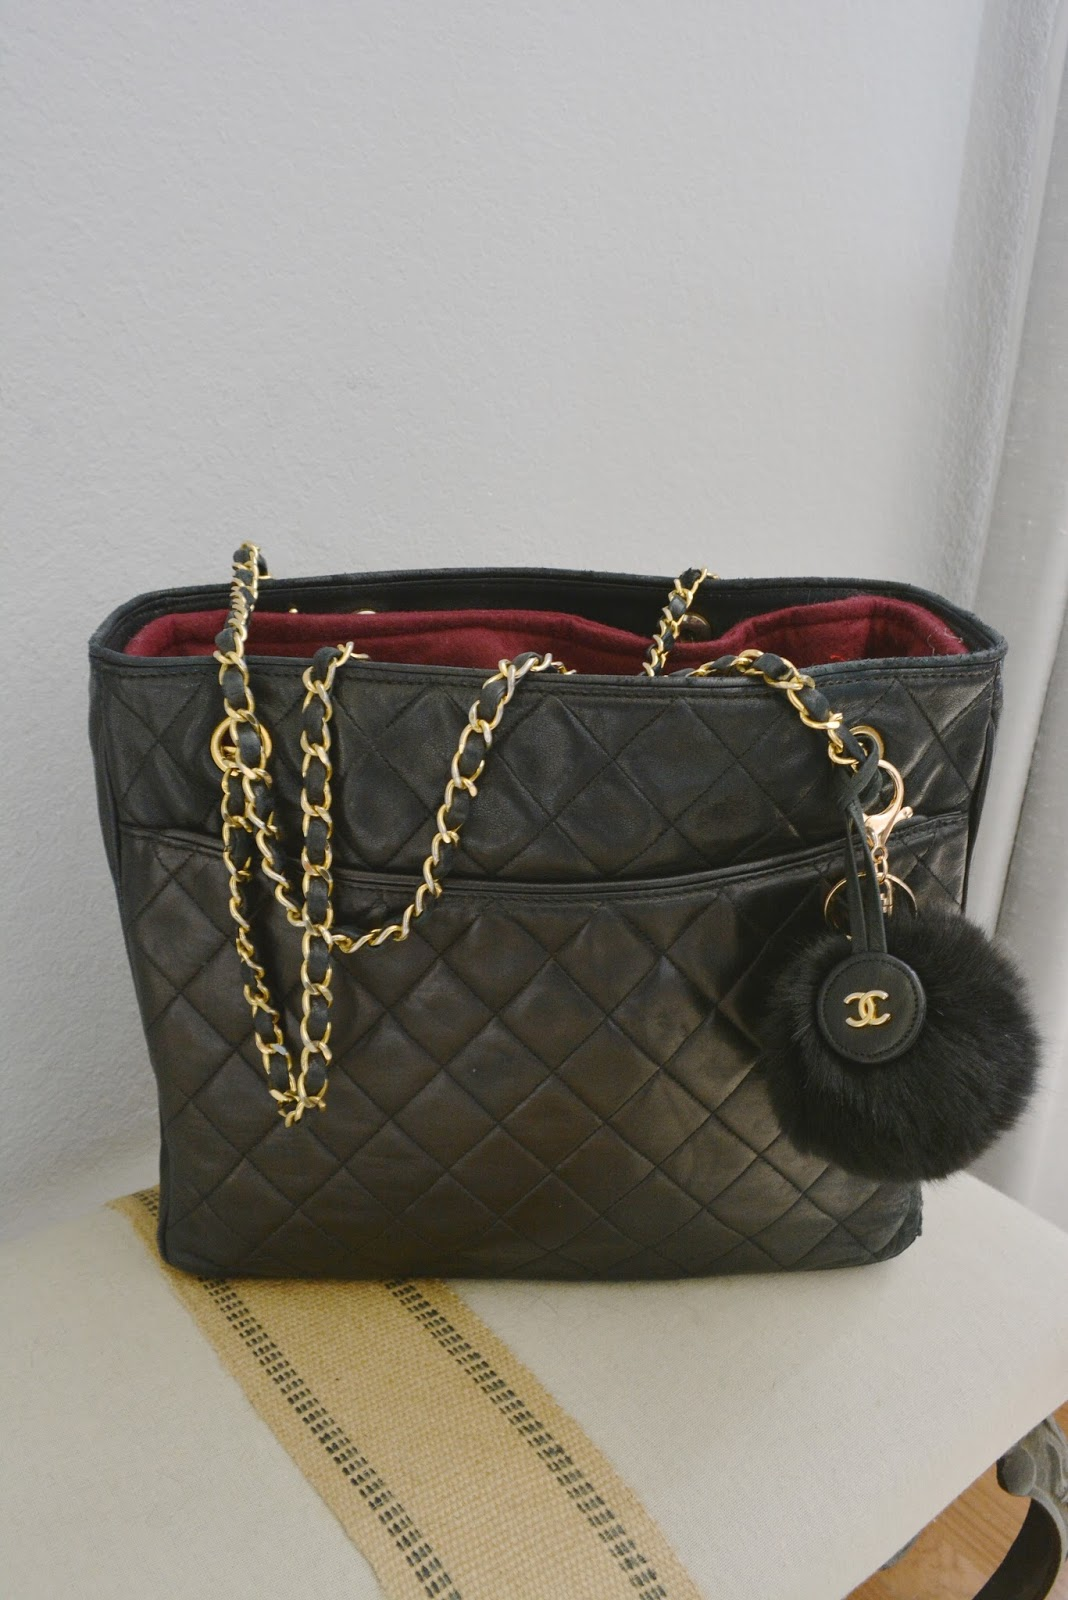 80's Chanel Tote, Vintage and Rehabbed